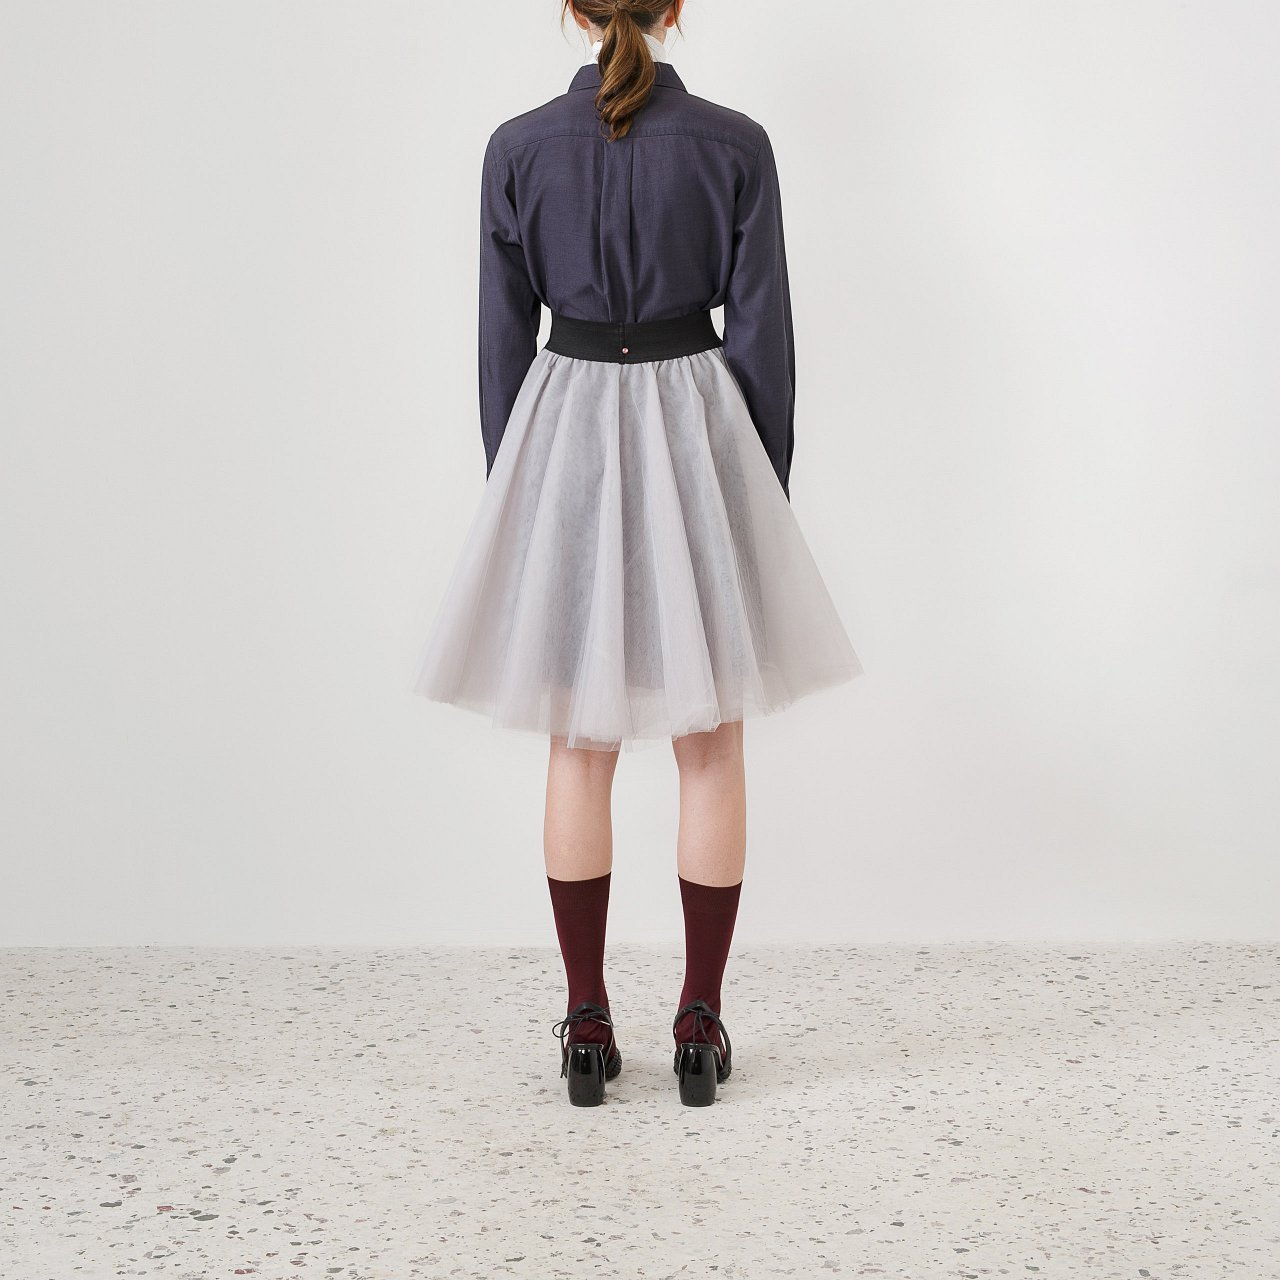 Product preview: Tulle Tutu Skirt Gray Short